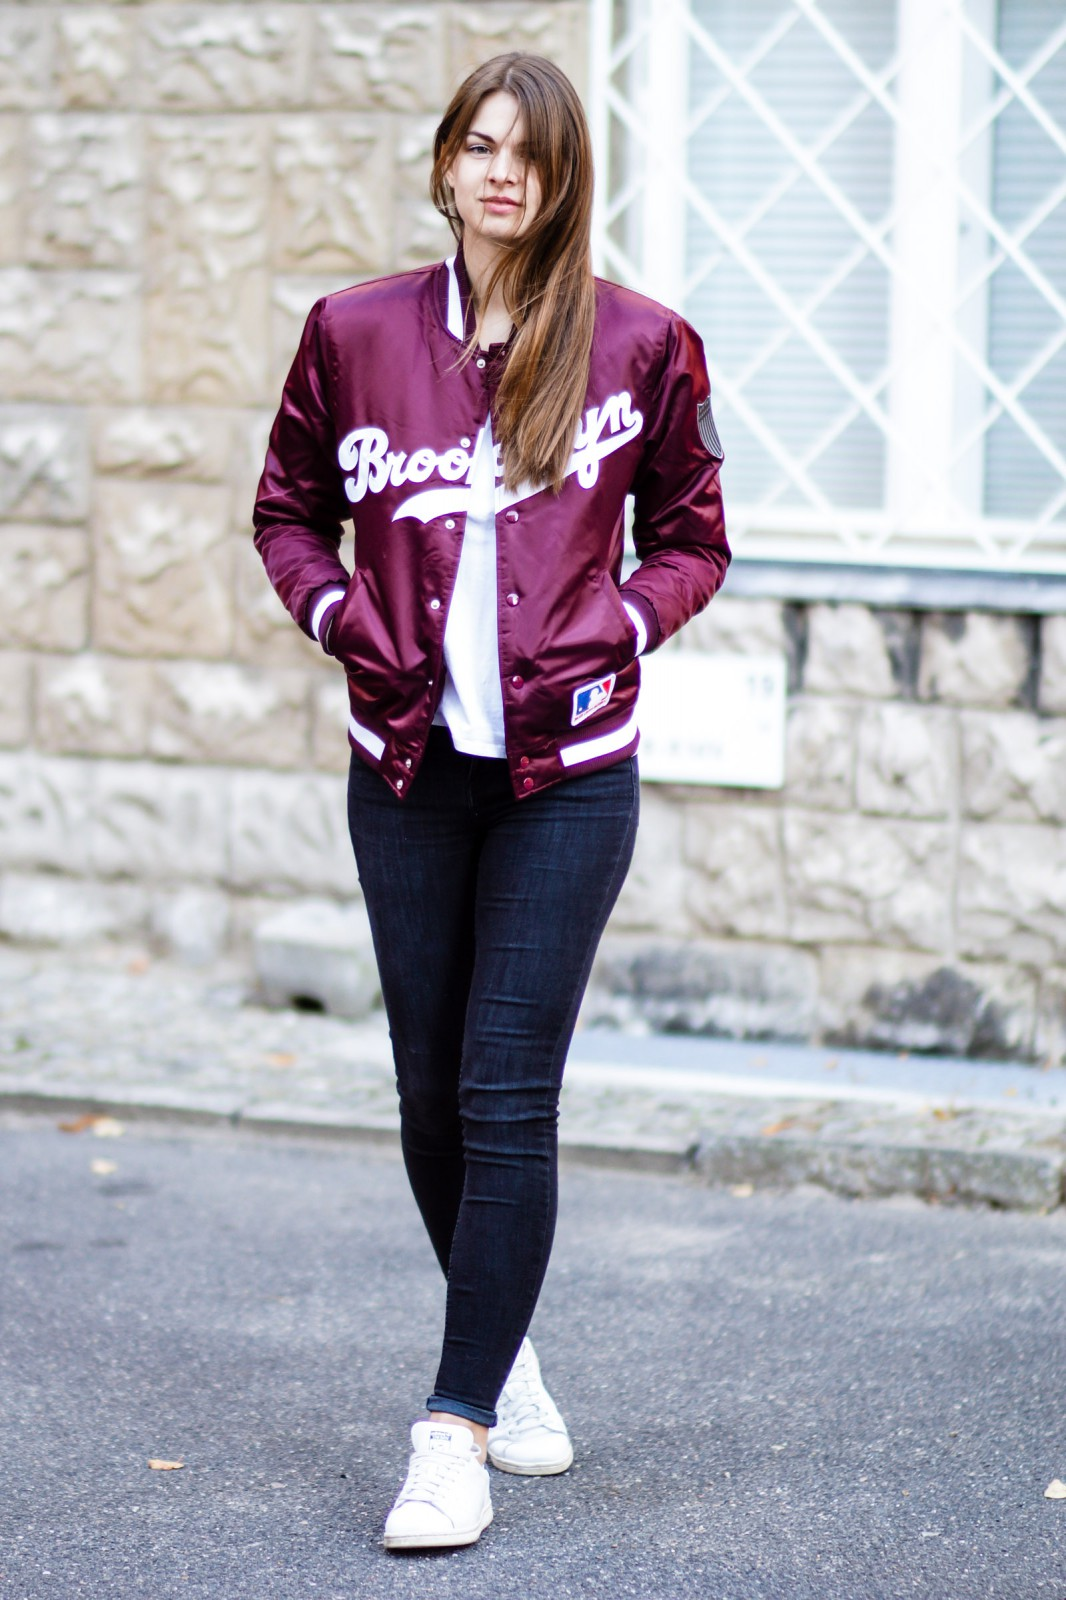 Brooklyn Dodgers Bomber Jacket